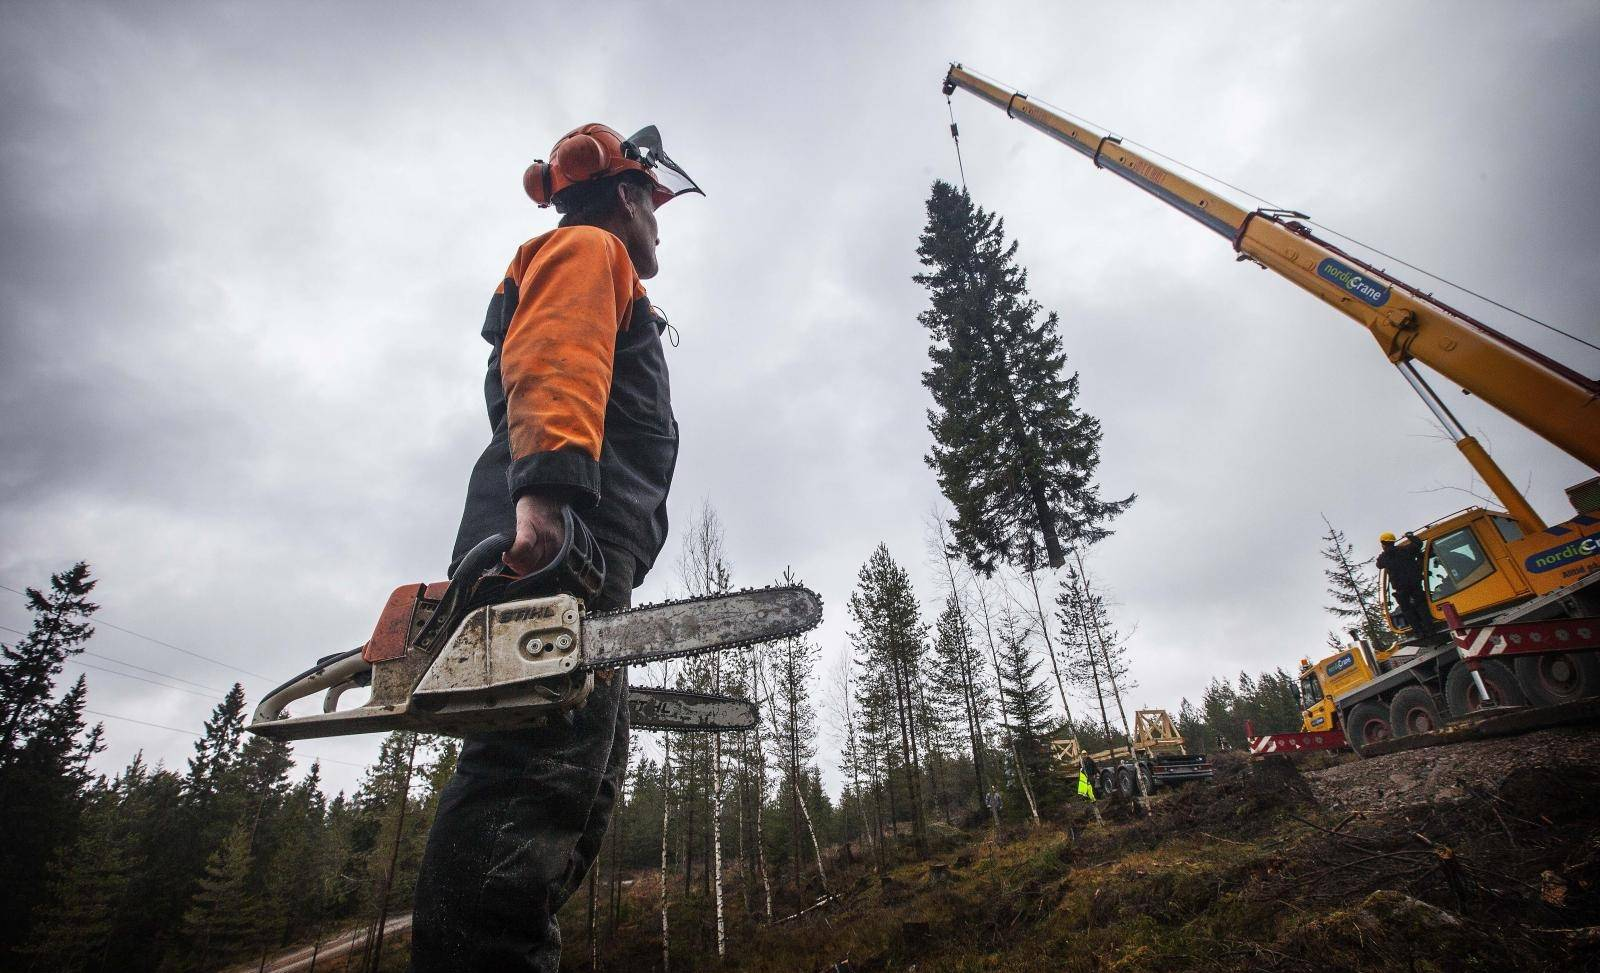 The annual felling of the Trafalgar Square Christmas tree in a forest outside the capital Oslo. The annual felling of the Trafalgar Square Christmas tree in a forest outside the capital Oslo.